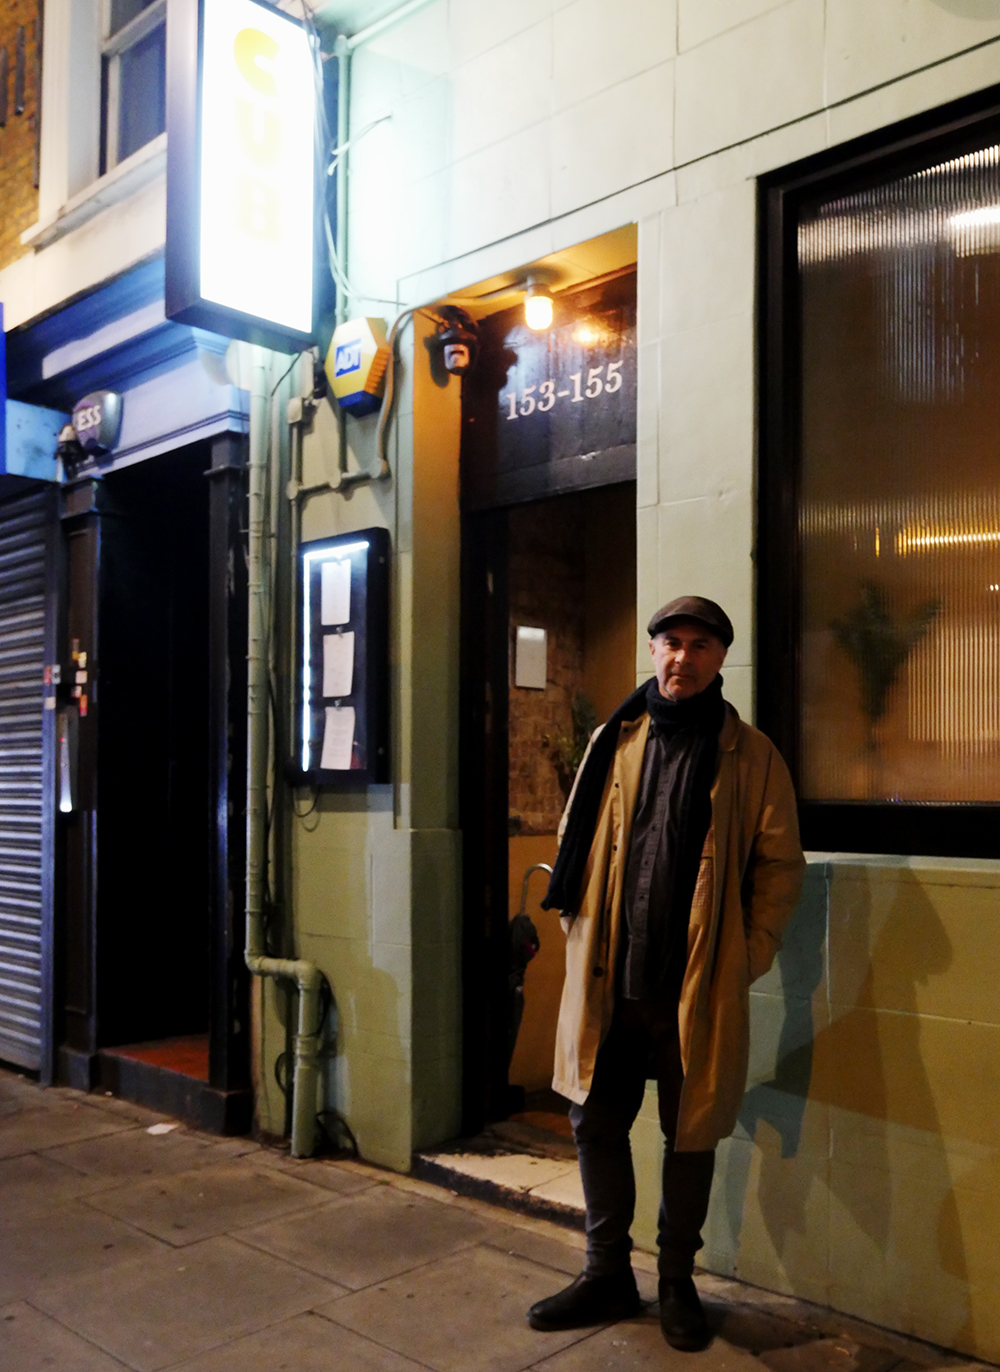 Cub Hoxton - The Hedonist